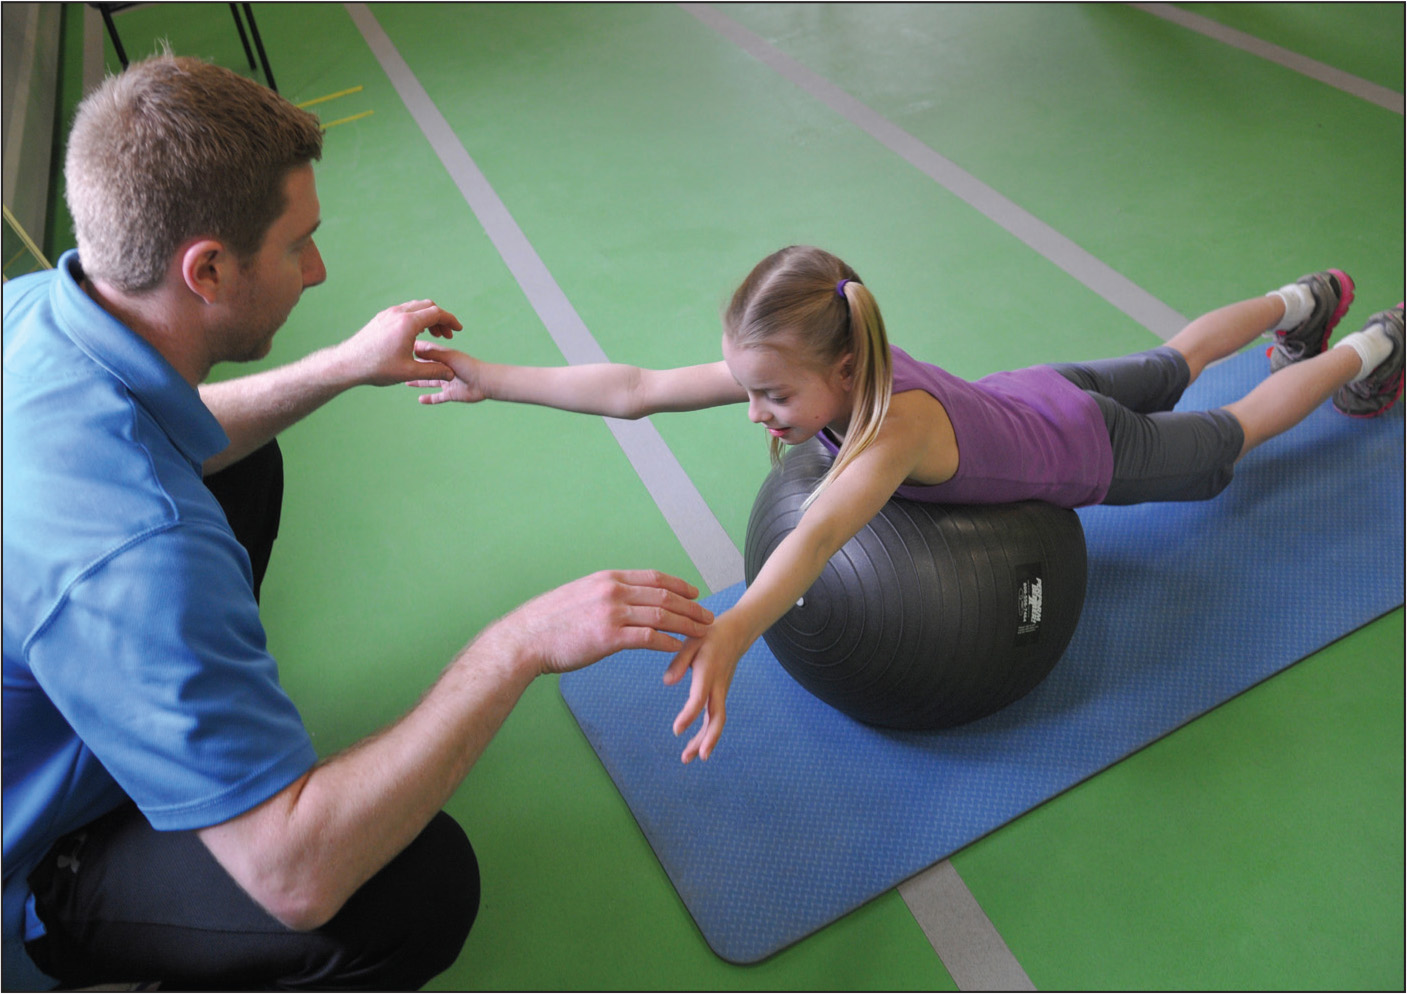 Training for peri scapular and upper trunk muscles, and core muscle strength and stabilization. From The Micheli Center for Sports Injury Prevention (Waltham, MA) with consent of both participants.